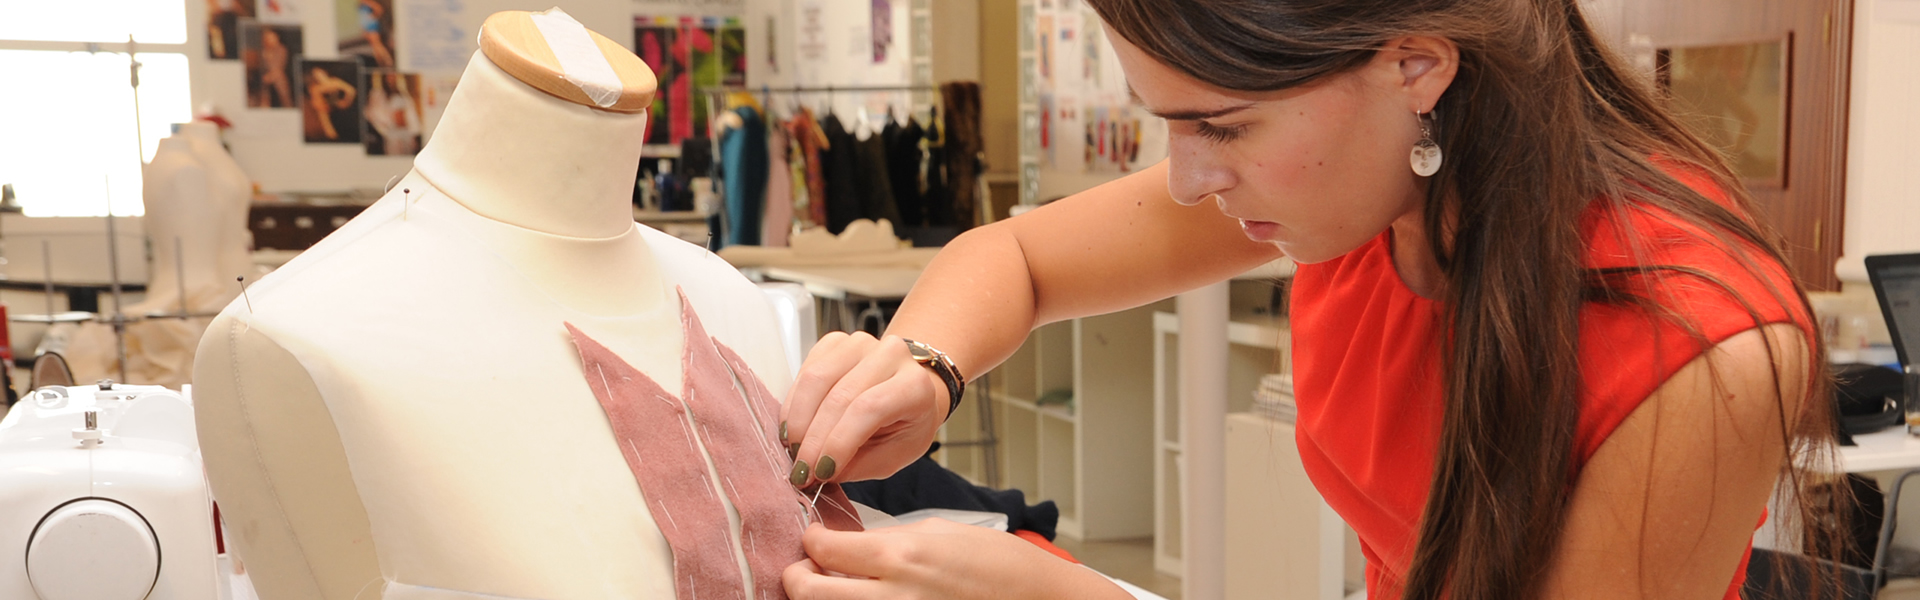 Marbella Design Academy - Fashion Design